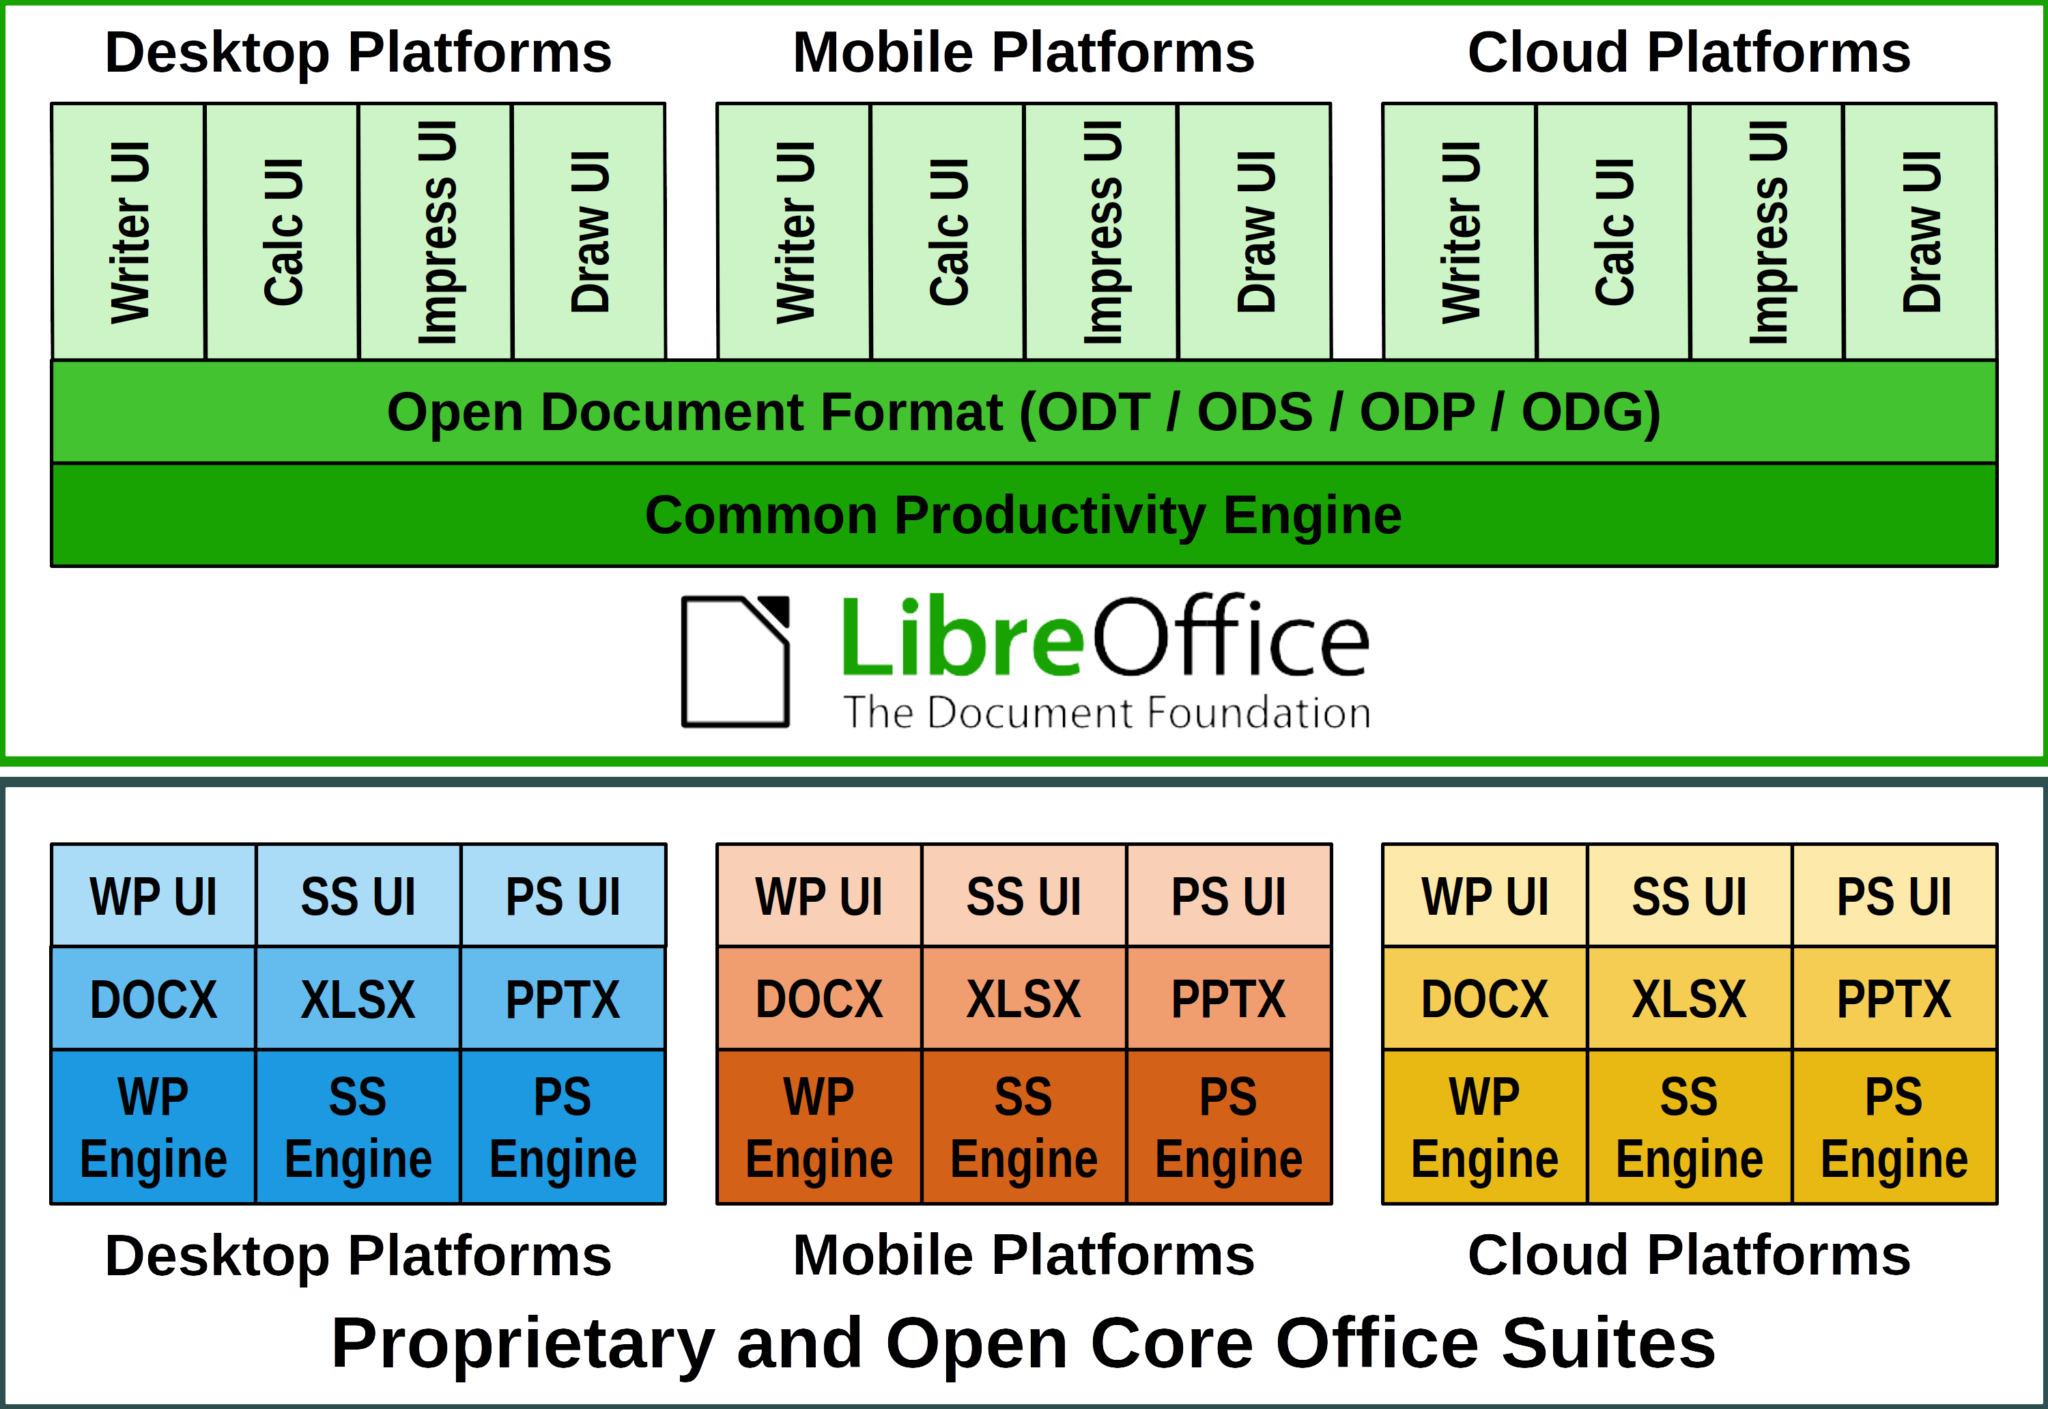 [White Paper] LibreOffice Technology, the only software platform for personal productivity on the desktop, mobile and cloud